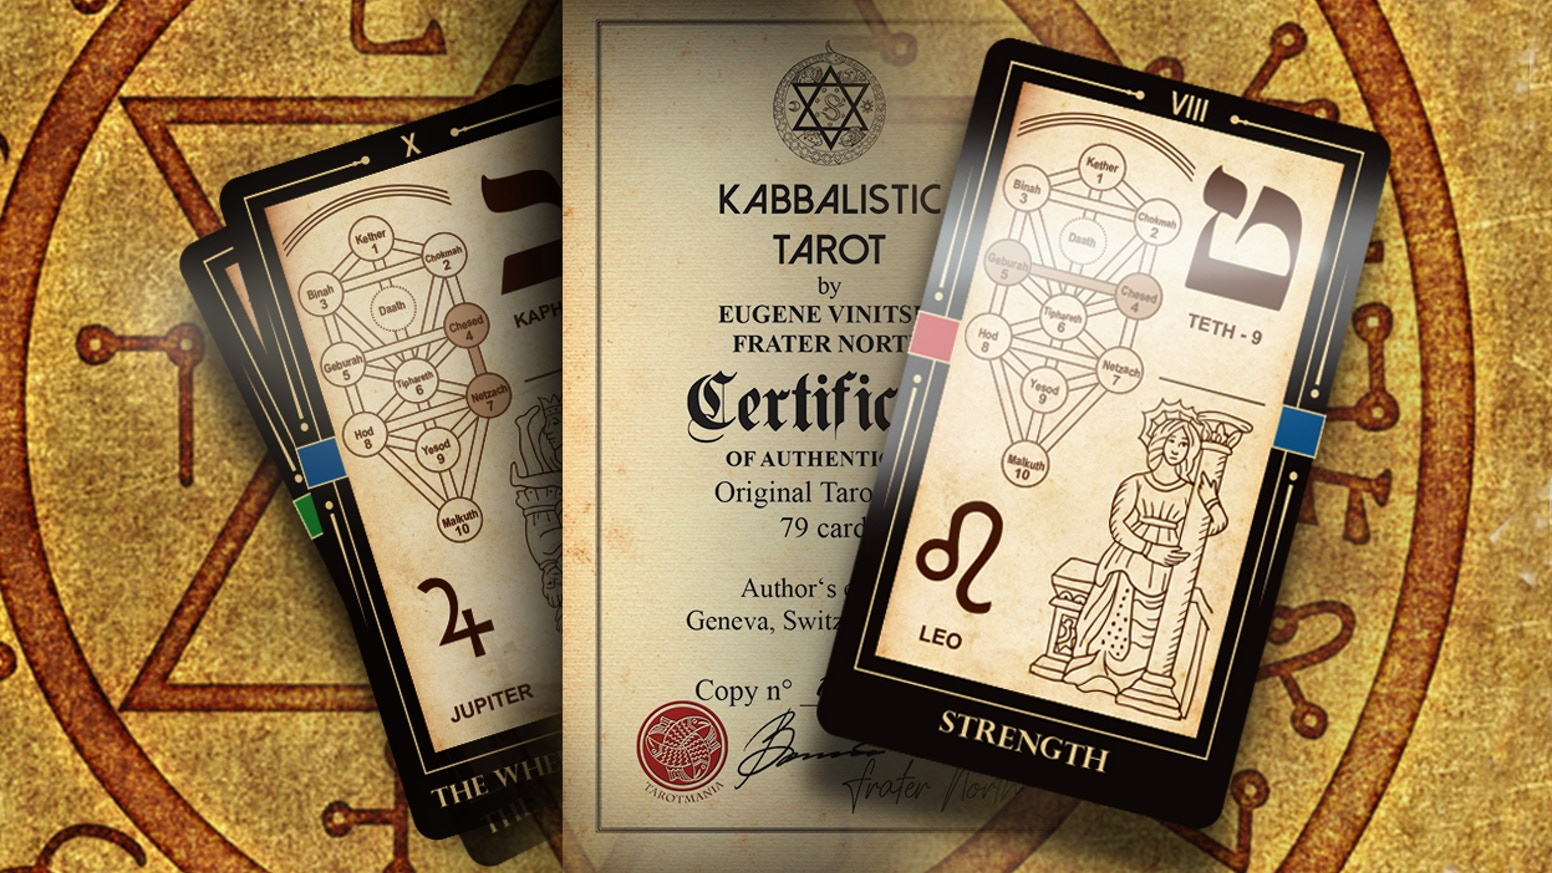 The Kabbalistic Tarot Cards Deck by Eugene Vinitski